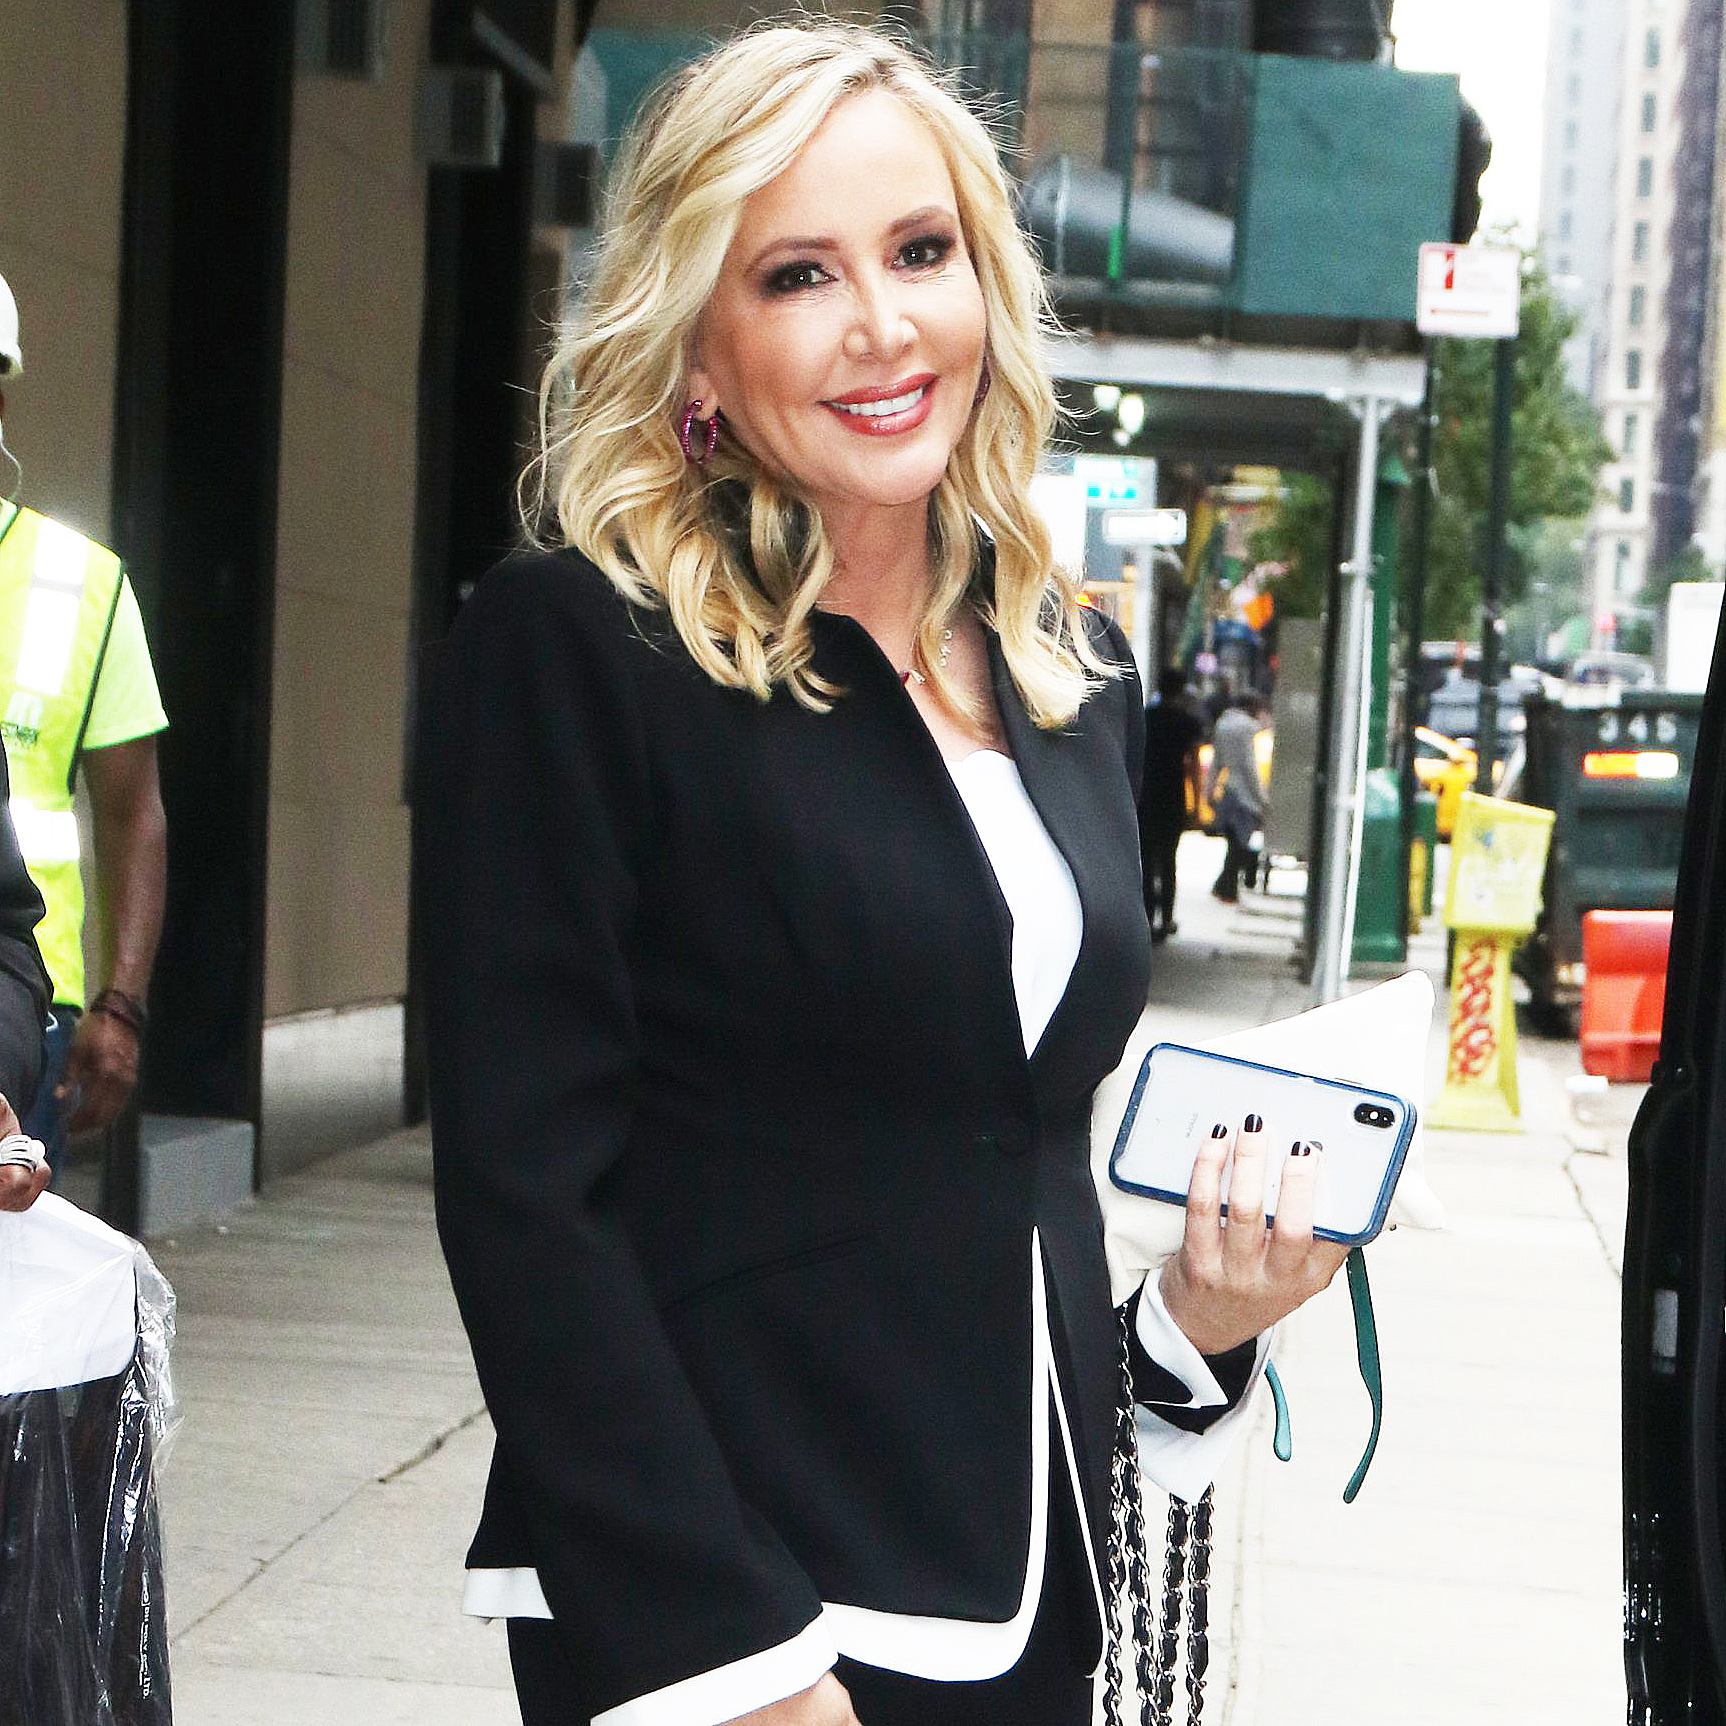 Shannon Beador Absolutely Sent David's Wife Lesley a Baby Gift 1